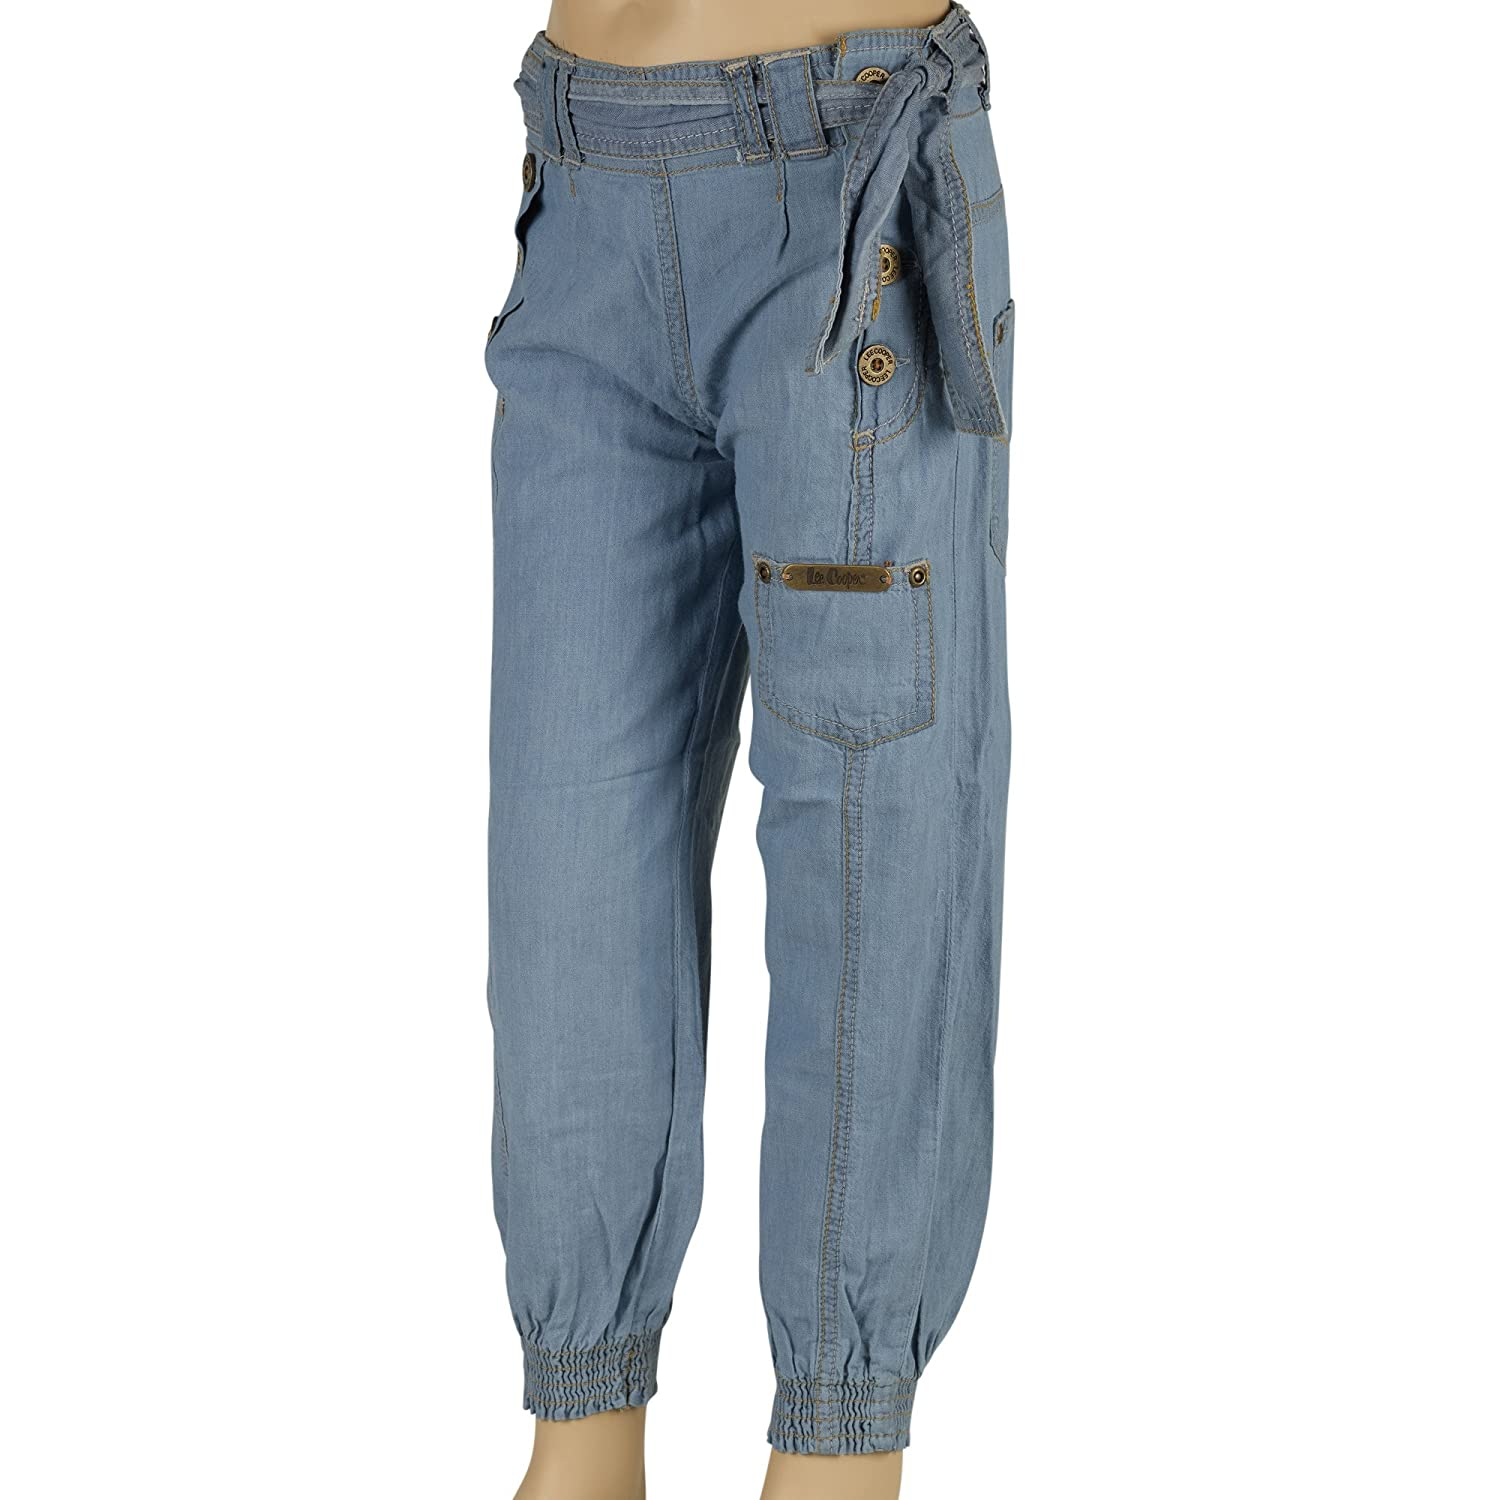 Lee Cooper Designer Girls Denim Jeans Casual Fashion Trousers Pants Cuffed Ankle